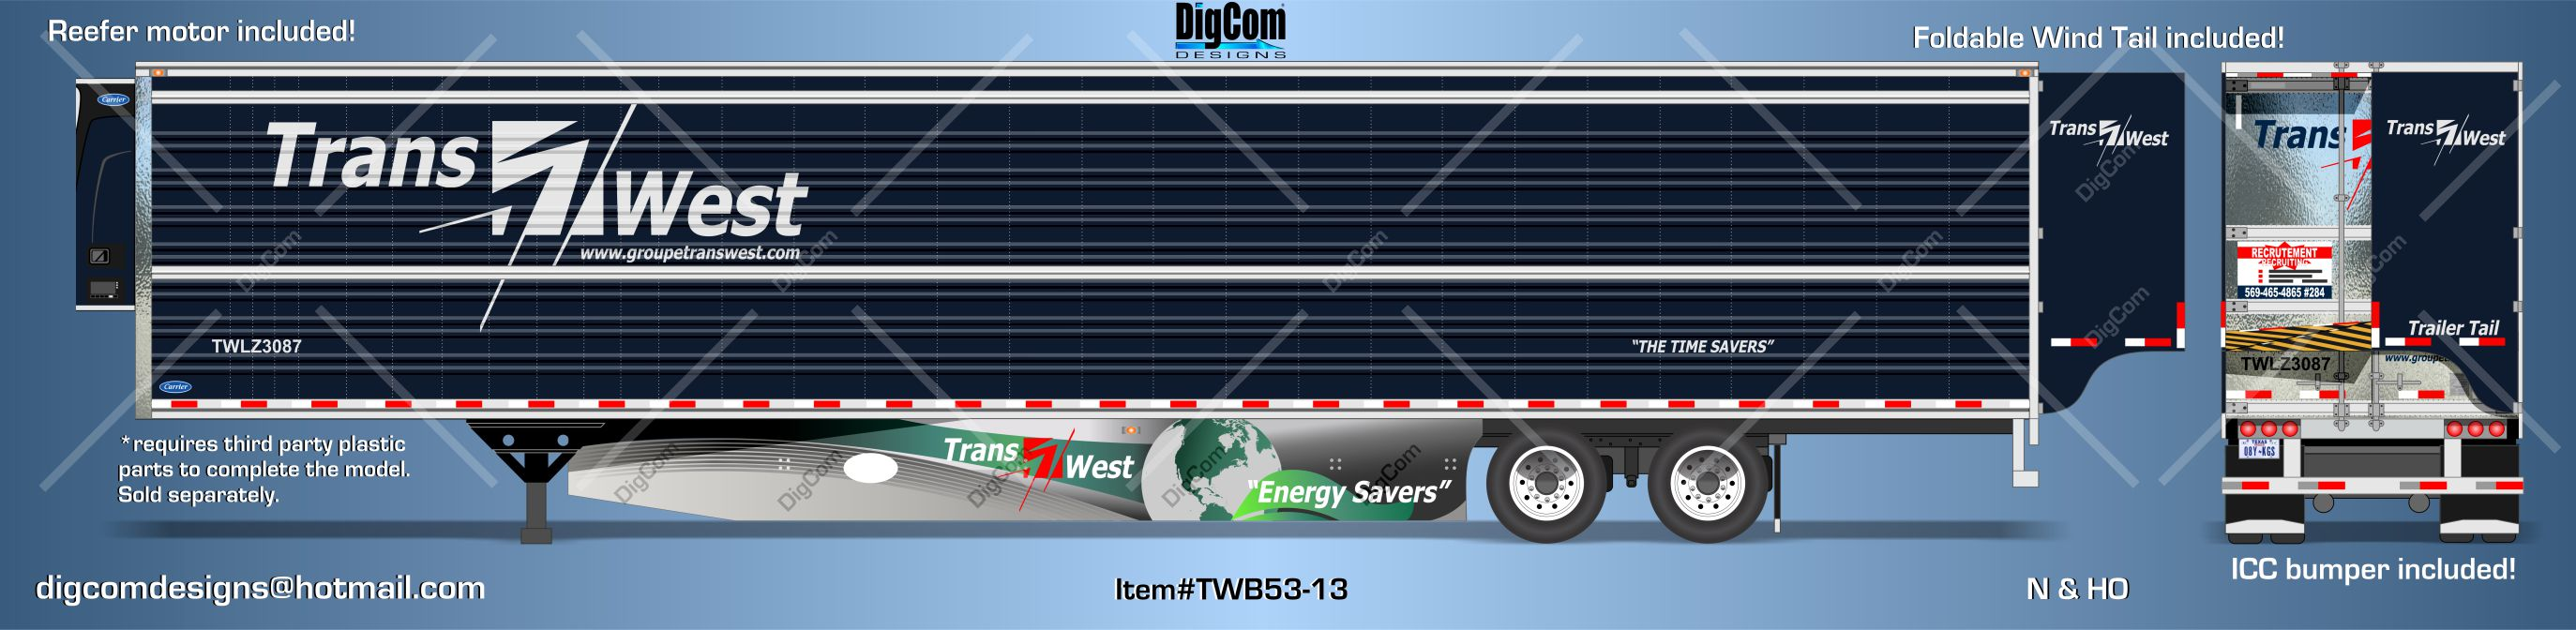 TRANSWEST BLACK TRAILER DESIGN.jpg